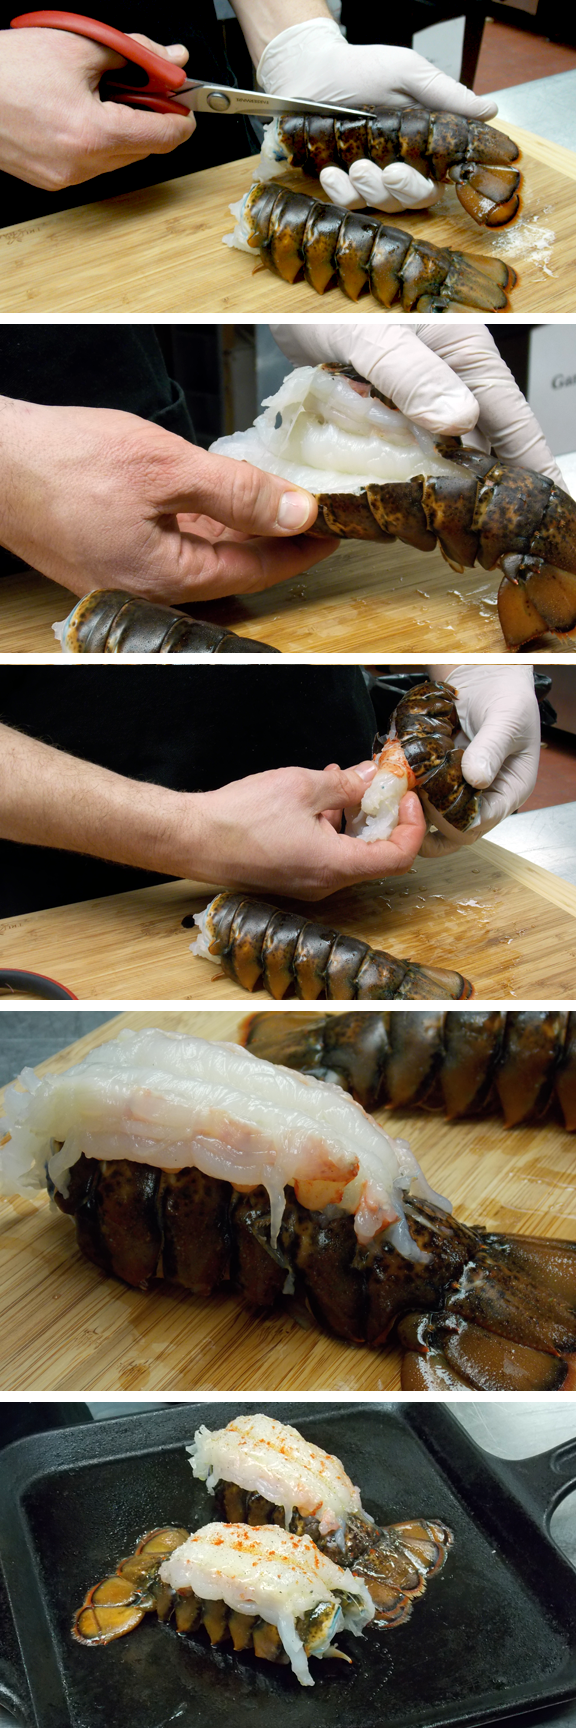 Steps for preparing lobster tail